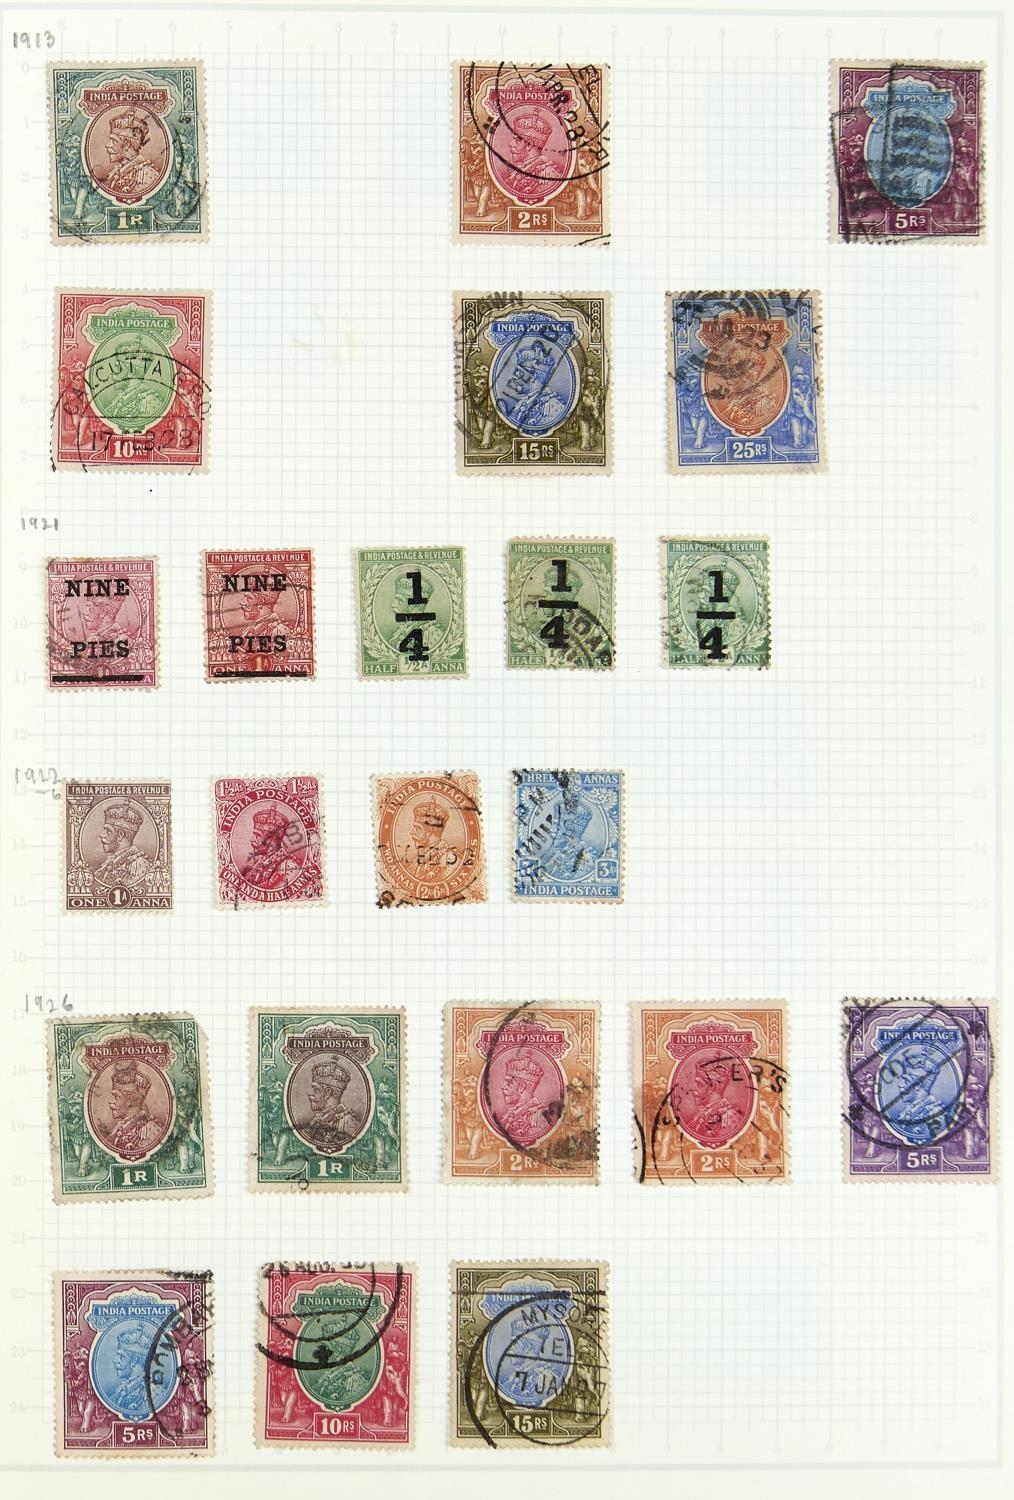 INDIA & STATES 1854-1947 The mainly used two volume collection with some duplication. Inc 1854 1/2da - Image 3 of 3